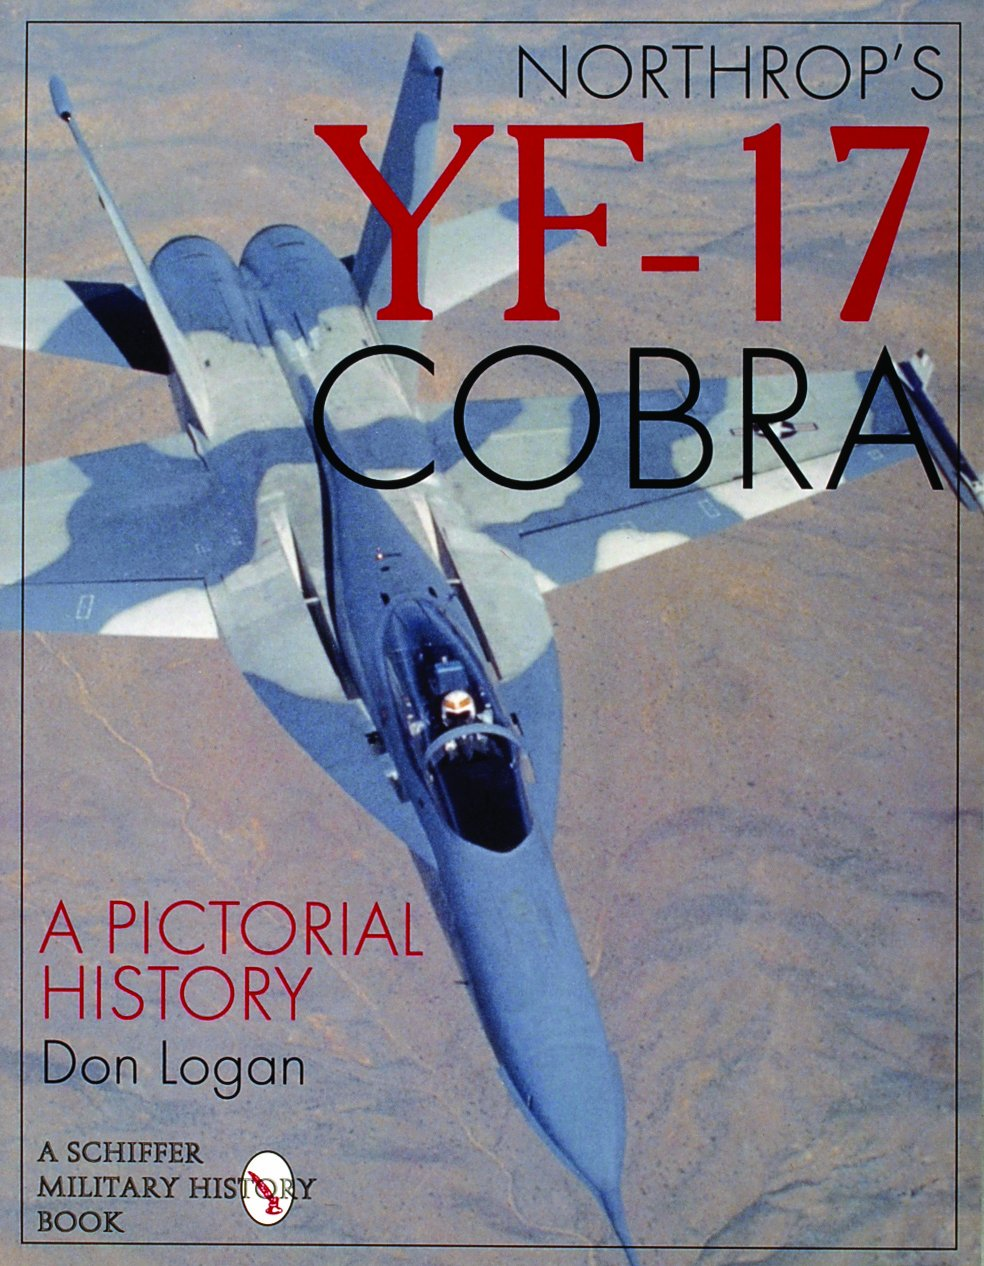 Northrop's YF-17 Cobra: A Pictorial History (Schiffer Book for Carvers)